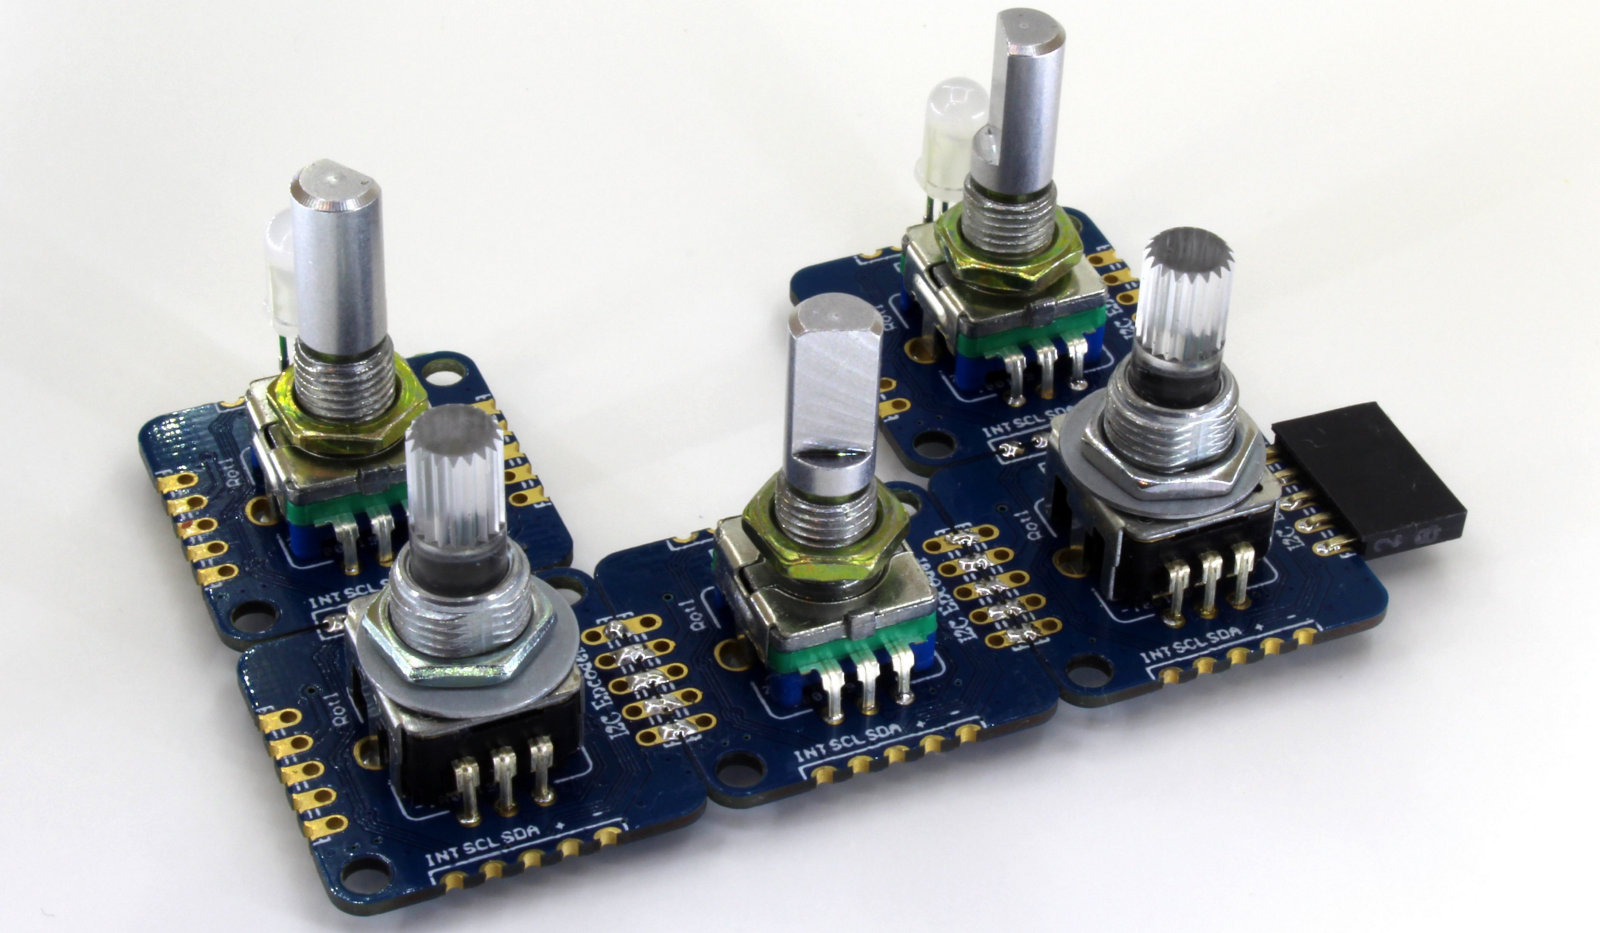 I2c Encoder Board Lets You Spinput Without The Hassle Definition Of Passive Components Are Electronic That If Using Also Means Multiple Encoders Can Be Chained Together And Theyre Configured So They Attached Directly With Solder